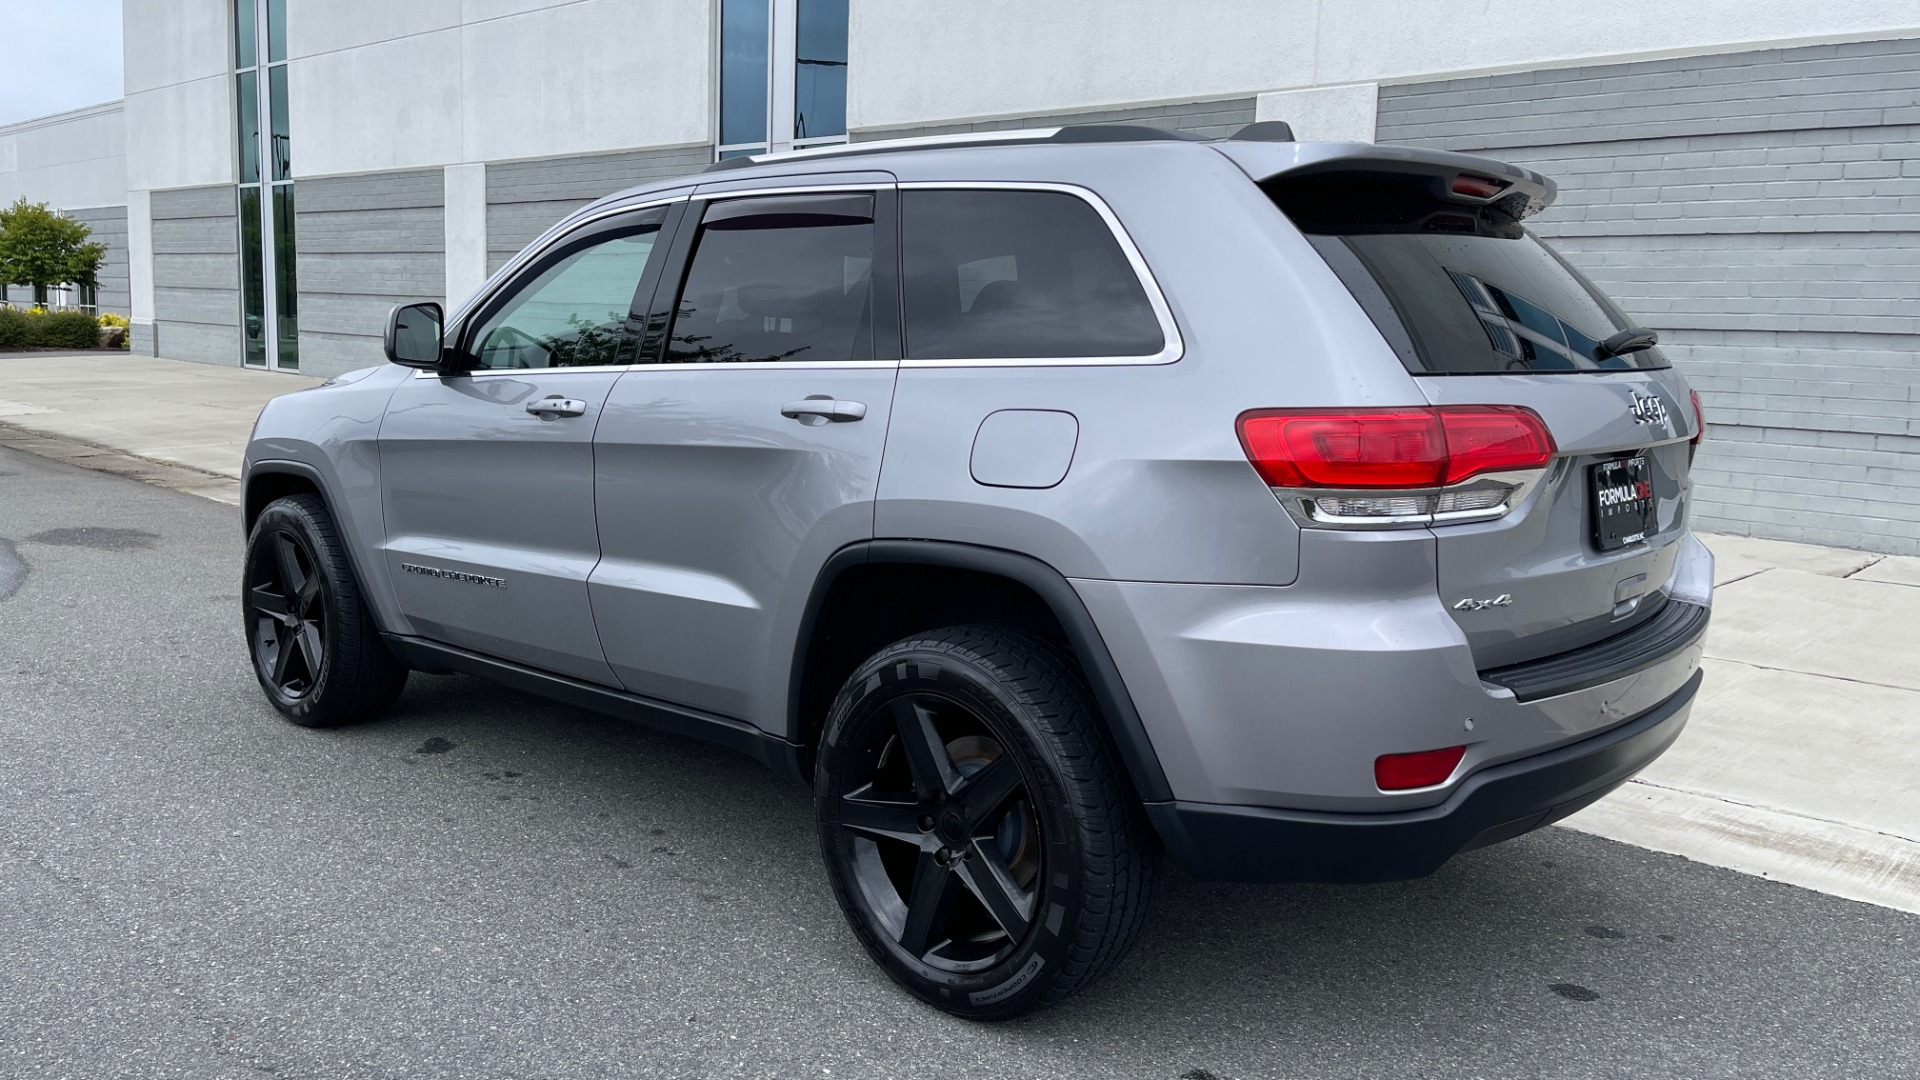 Used 2017 Jeep GRAND CHEROKEE LAREDO E 4X4 / KEYLESS-GO / 8.4IN TOUCH SCREEN / REARVIEW for sale $27,595 at Formula Imports in Charlotte NC 28227 5